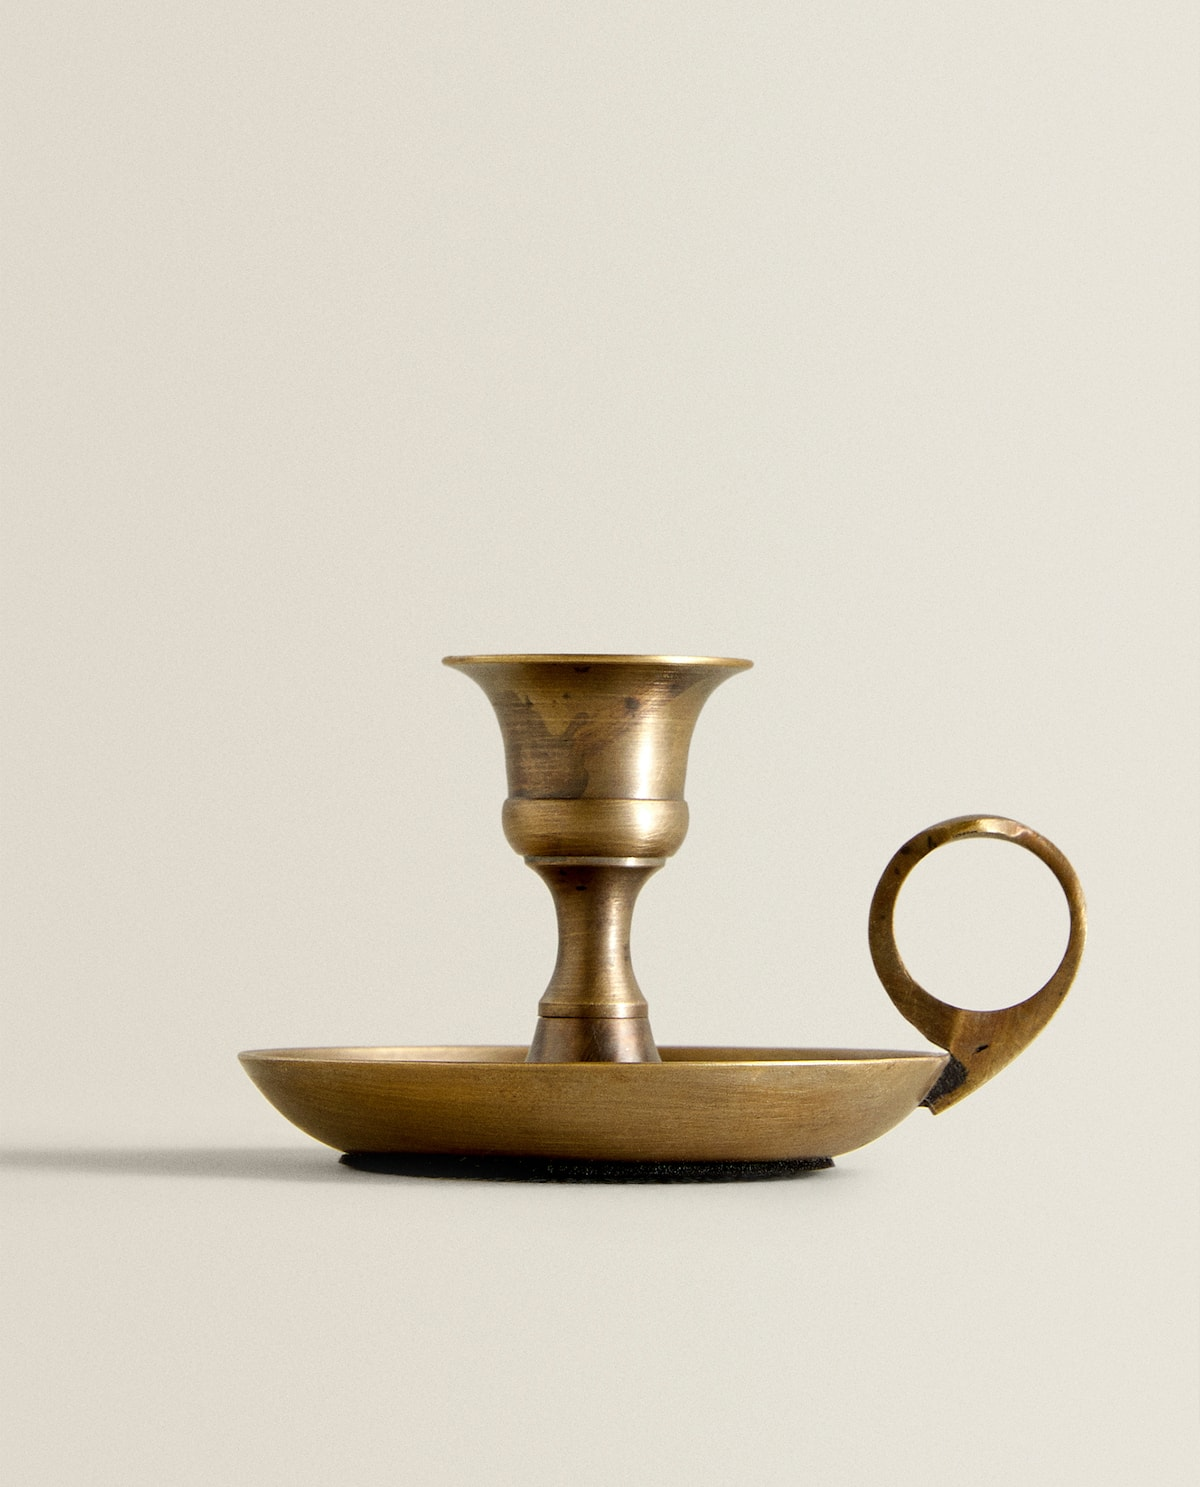 Gold Antique Finish Candlestick  Candlesticks And Tealight Holders   Decoration   Bedroom by Zara Home